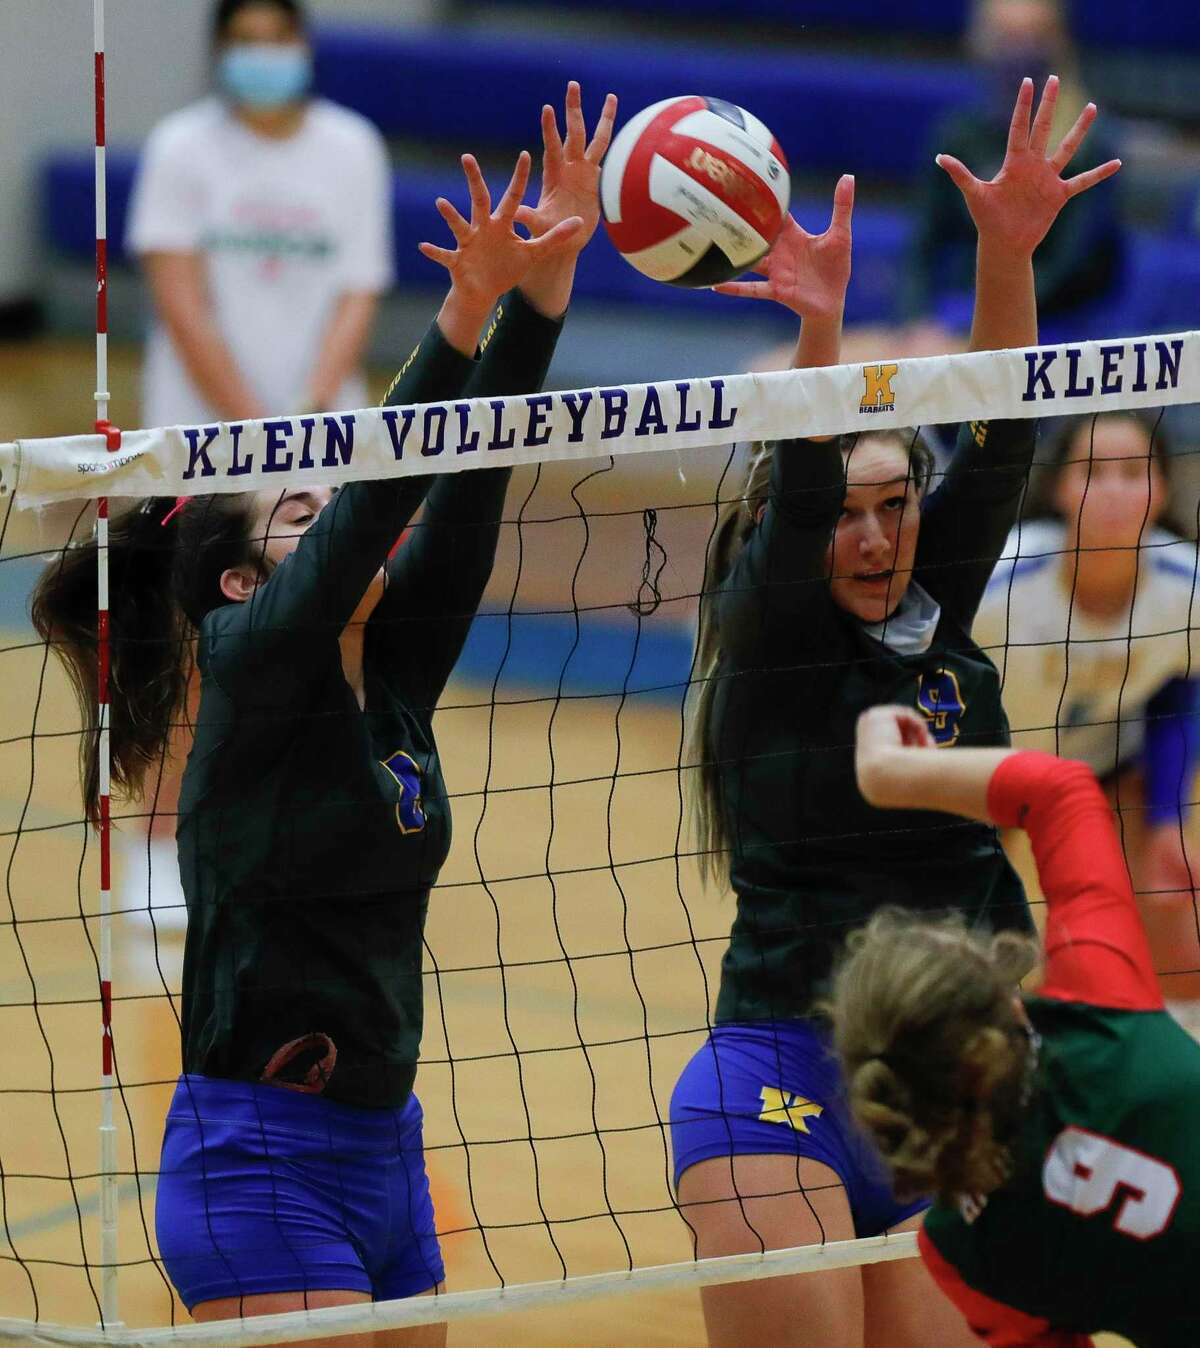 Klein middle hitter Kierstyn Mcfall (9) blocks a shot by The Woodlands outside hitter Makenzie Weddel (9) beside Klein right side hitter Abby Sweeney (8) during the second set of a non-district high school volleyball match at Klein High School, Saturday, Oct. 10, 2020, in Spring.